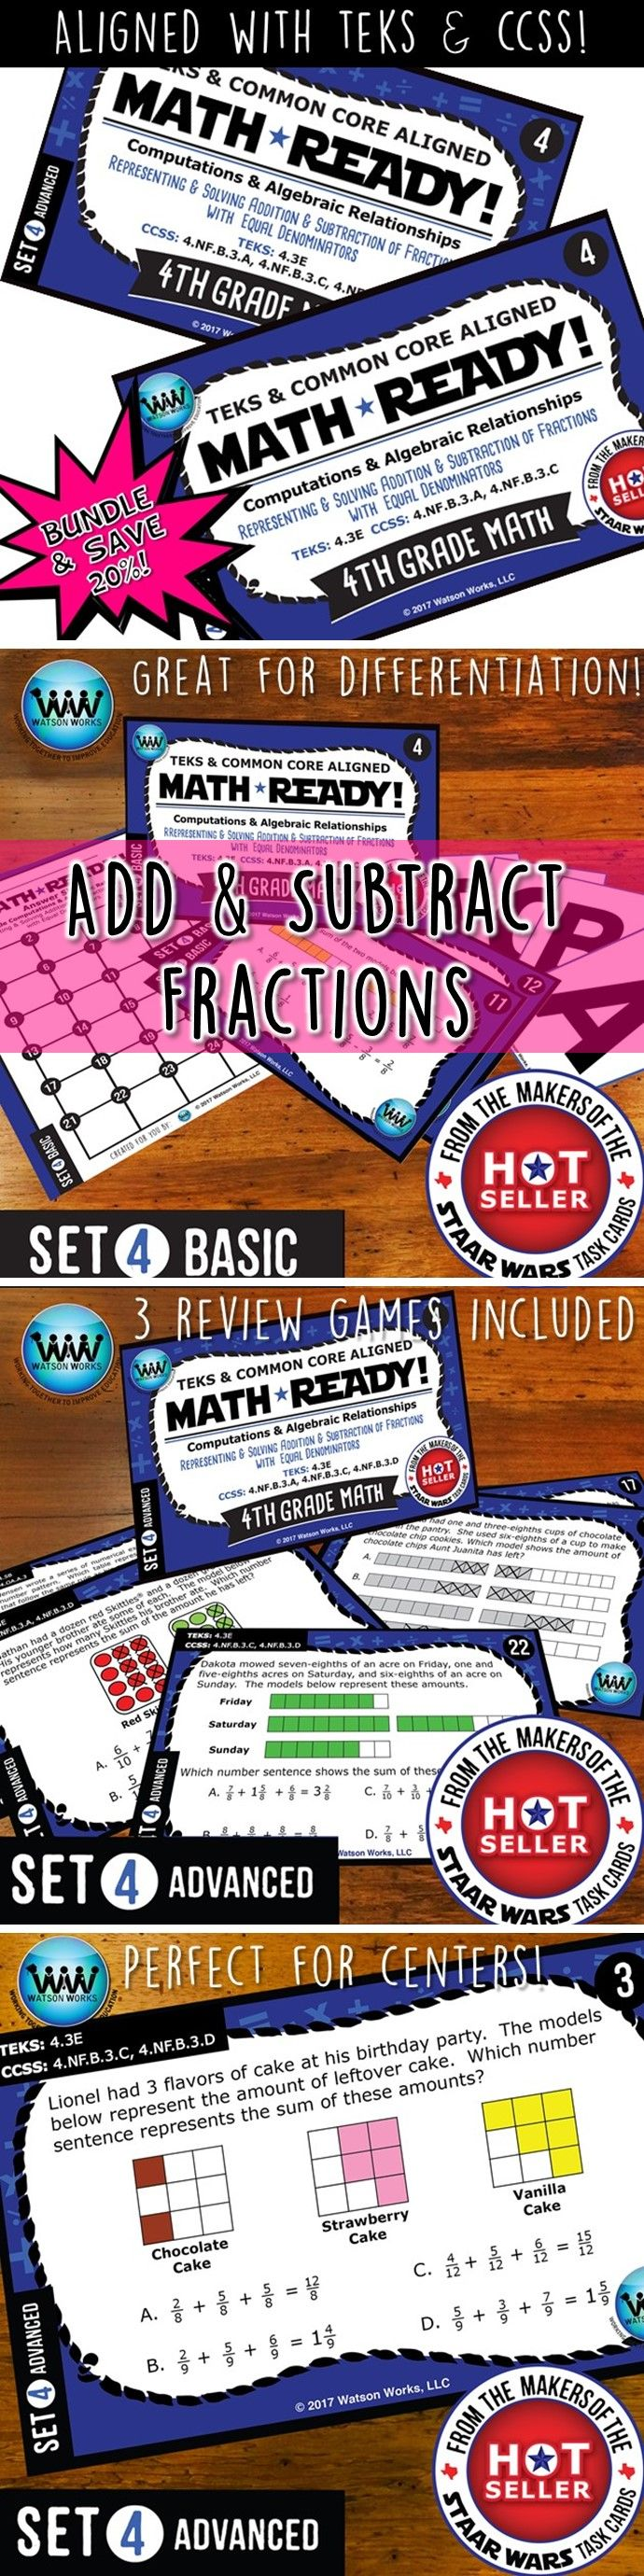 SAVE 20% WHEN YOU PURCHASE THIS BUNDLE (includes both our Basic & Advanced MATH READY Representing & Solving Addition & Subtraction of Fractions with Equal Denominators Task Cards sets)! Both sets include 24 task cards w/ multiple choice answers. The BASIC set helps your students practice & apply their understanding of adding & subtracting fractions at a simpler, basic level with shorter questions, while the ADVANCED set features rigorous, higher-level thinking questions w/ longer word…